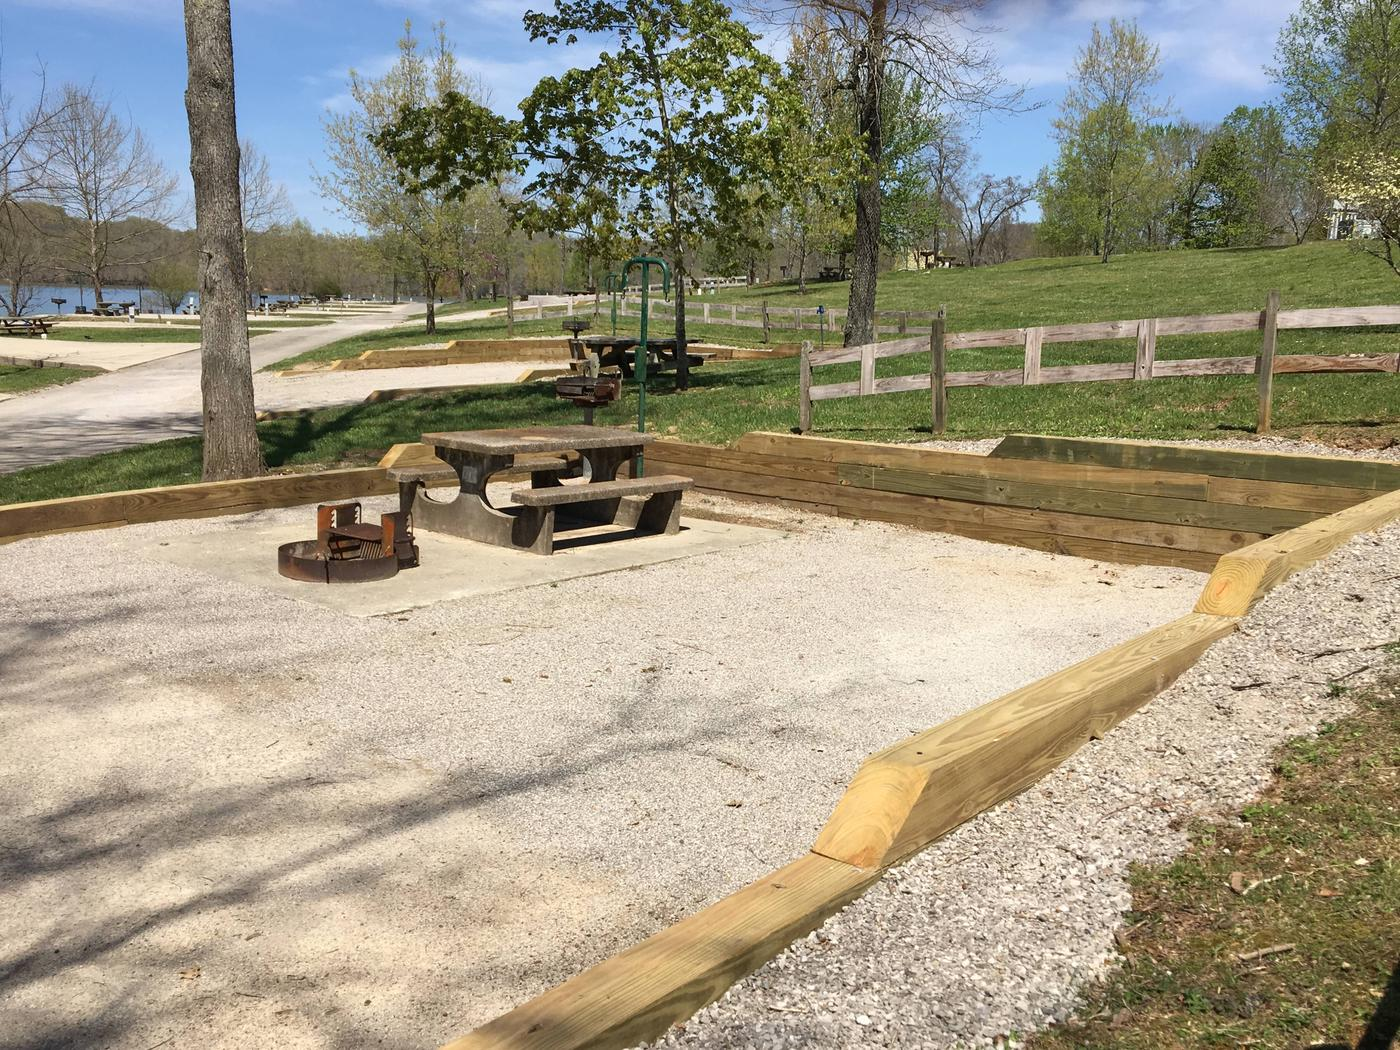 LILLYDALE CAMPGROUND SITE # 71 RENOVATED SPRING 2019LILLYDALE CAMPGROUND SITE # 71